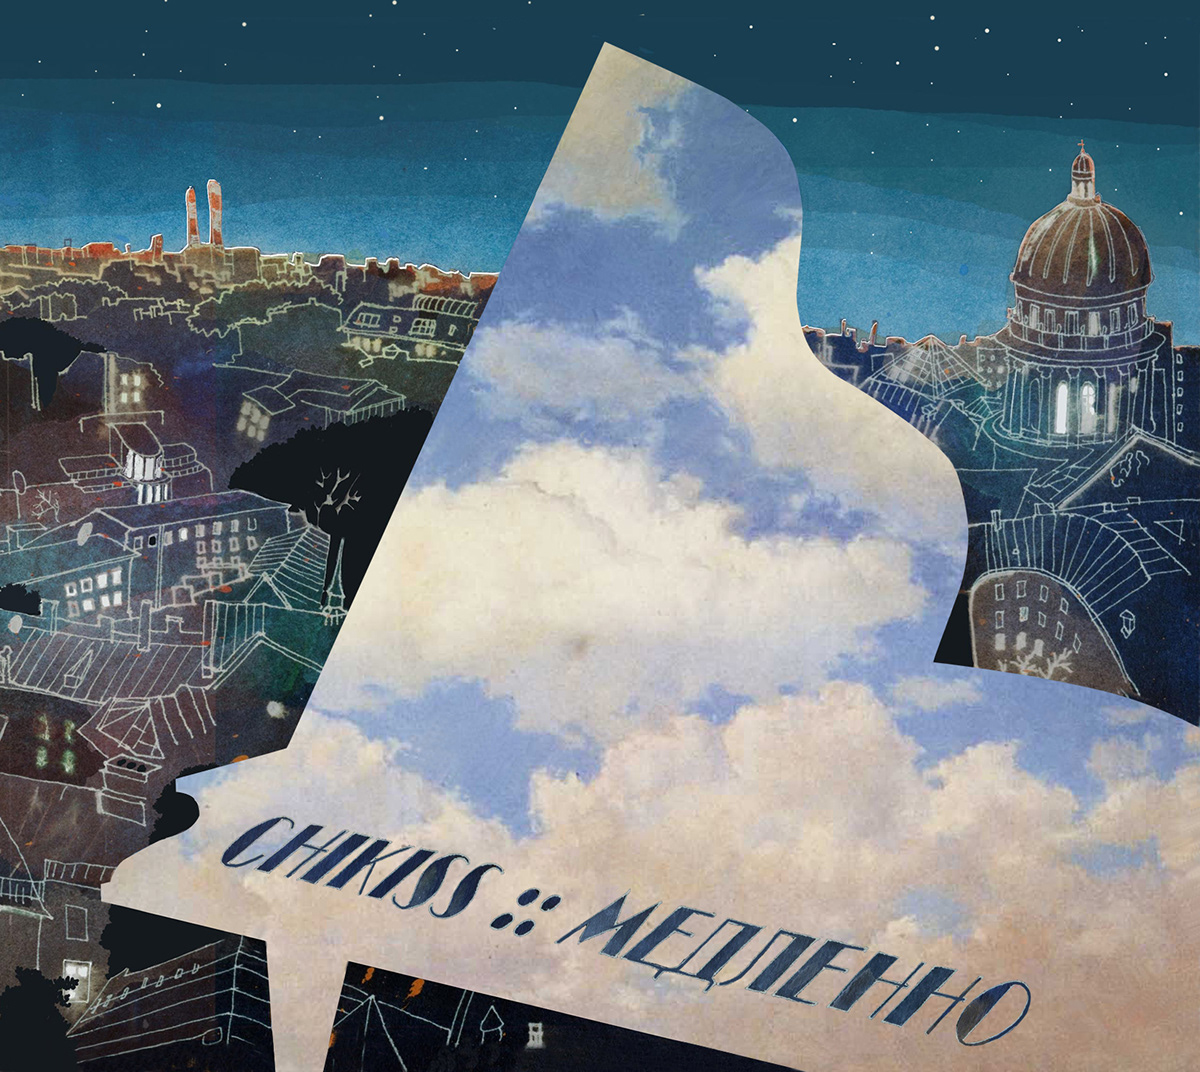 CHIKISS MEDLENNO CD cover